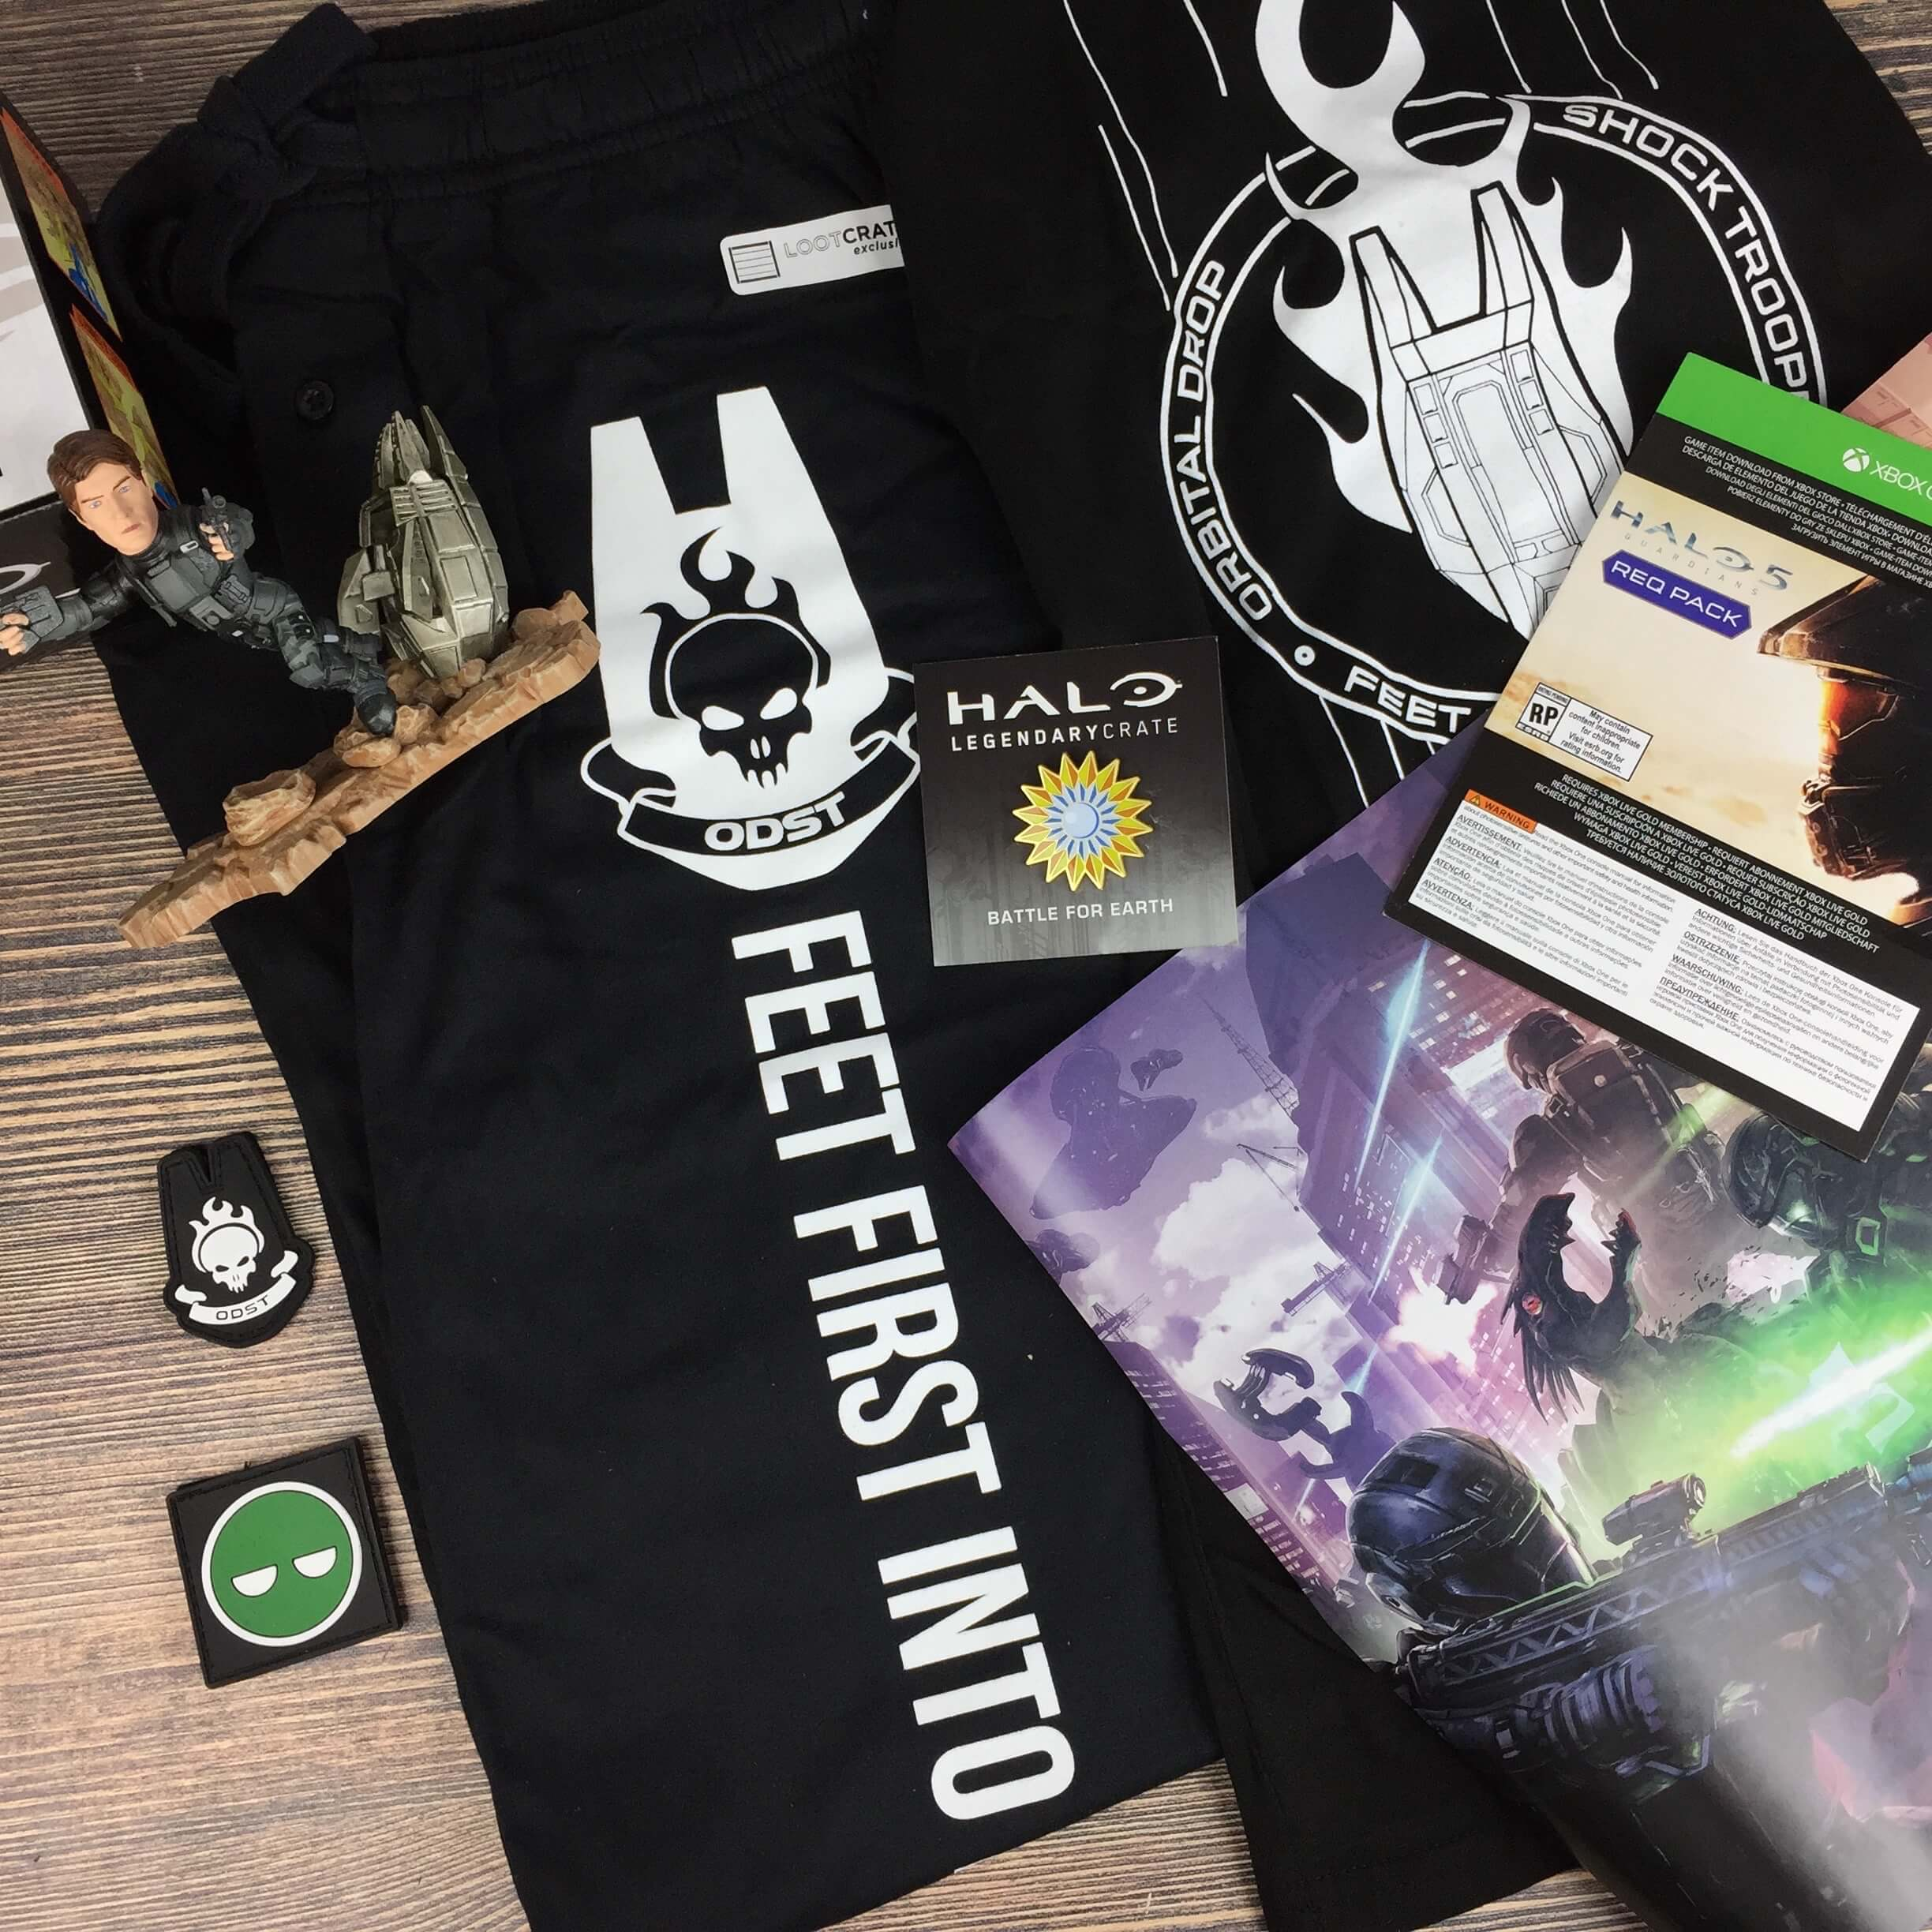 Halo Legendary Crate October 2016 Subscription Box Review + Coupon